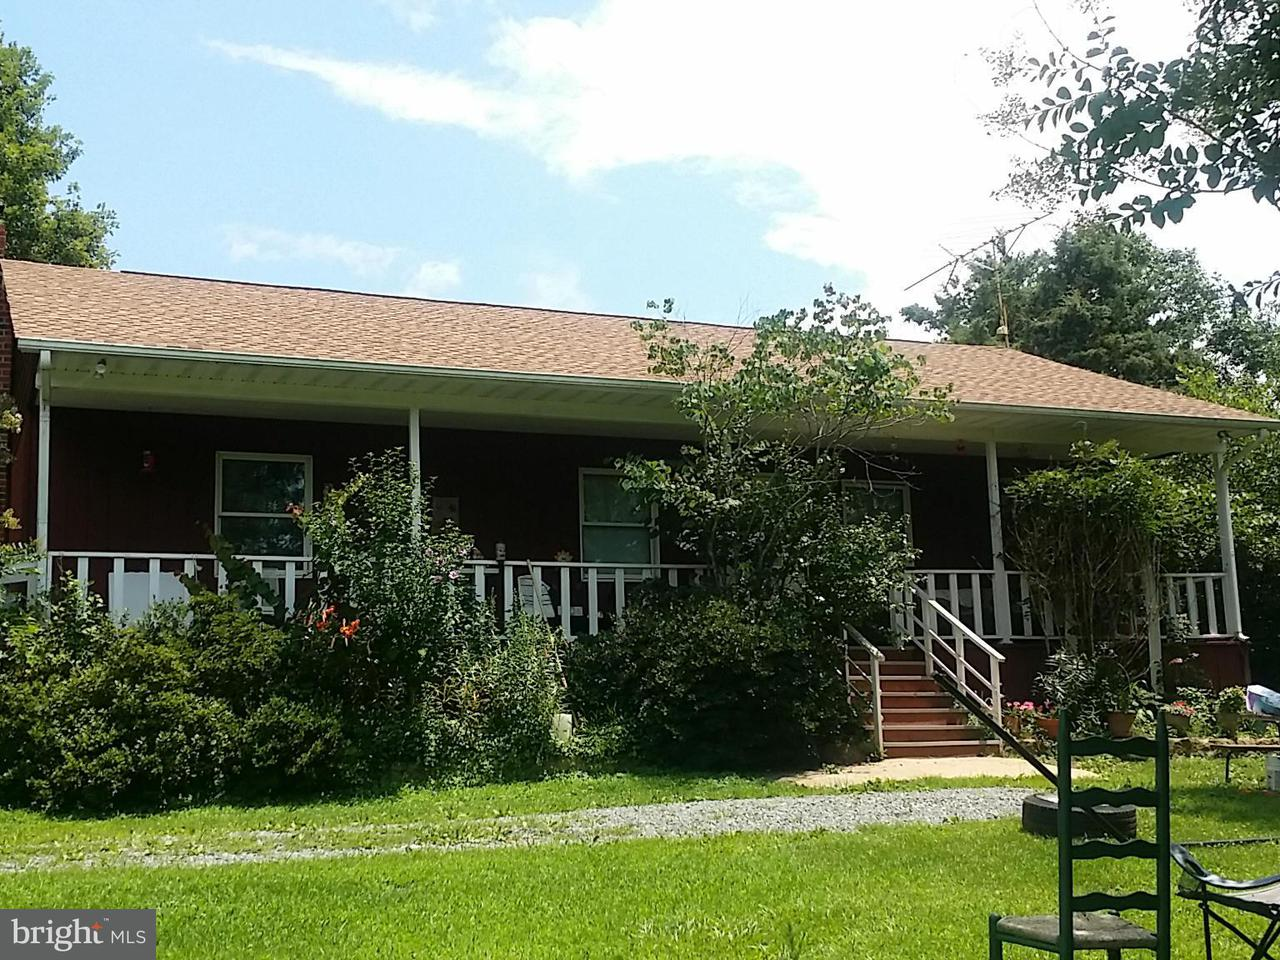 Additional photo for property listing at 3673 BYRD MILL Road 3673 BYRD MILL Road Louisa, Βιρτζινια 23093 Ηνωμενεσ Πολιτειεσ